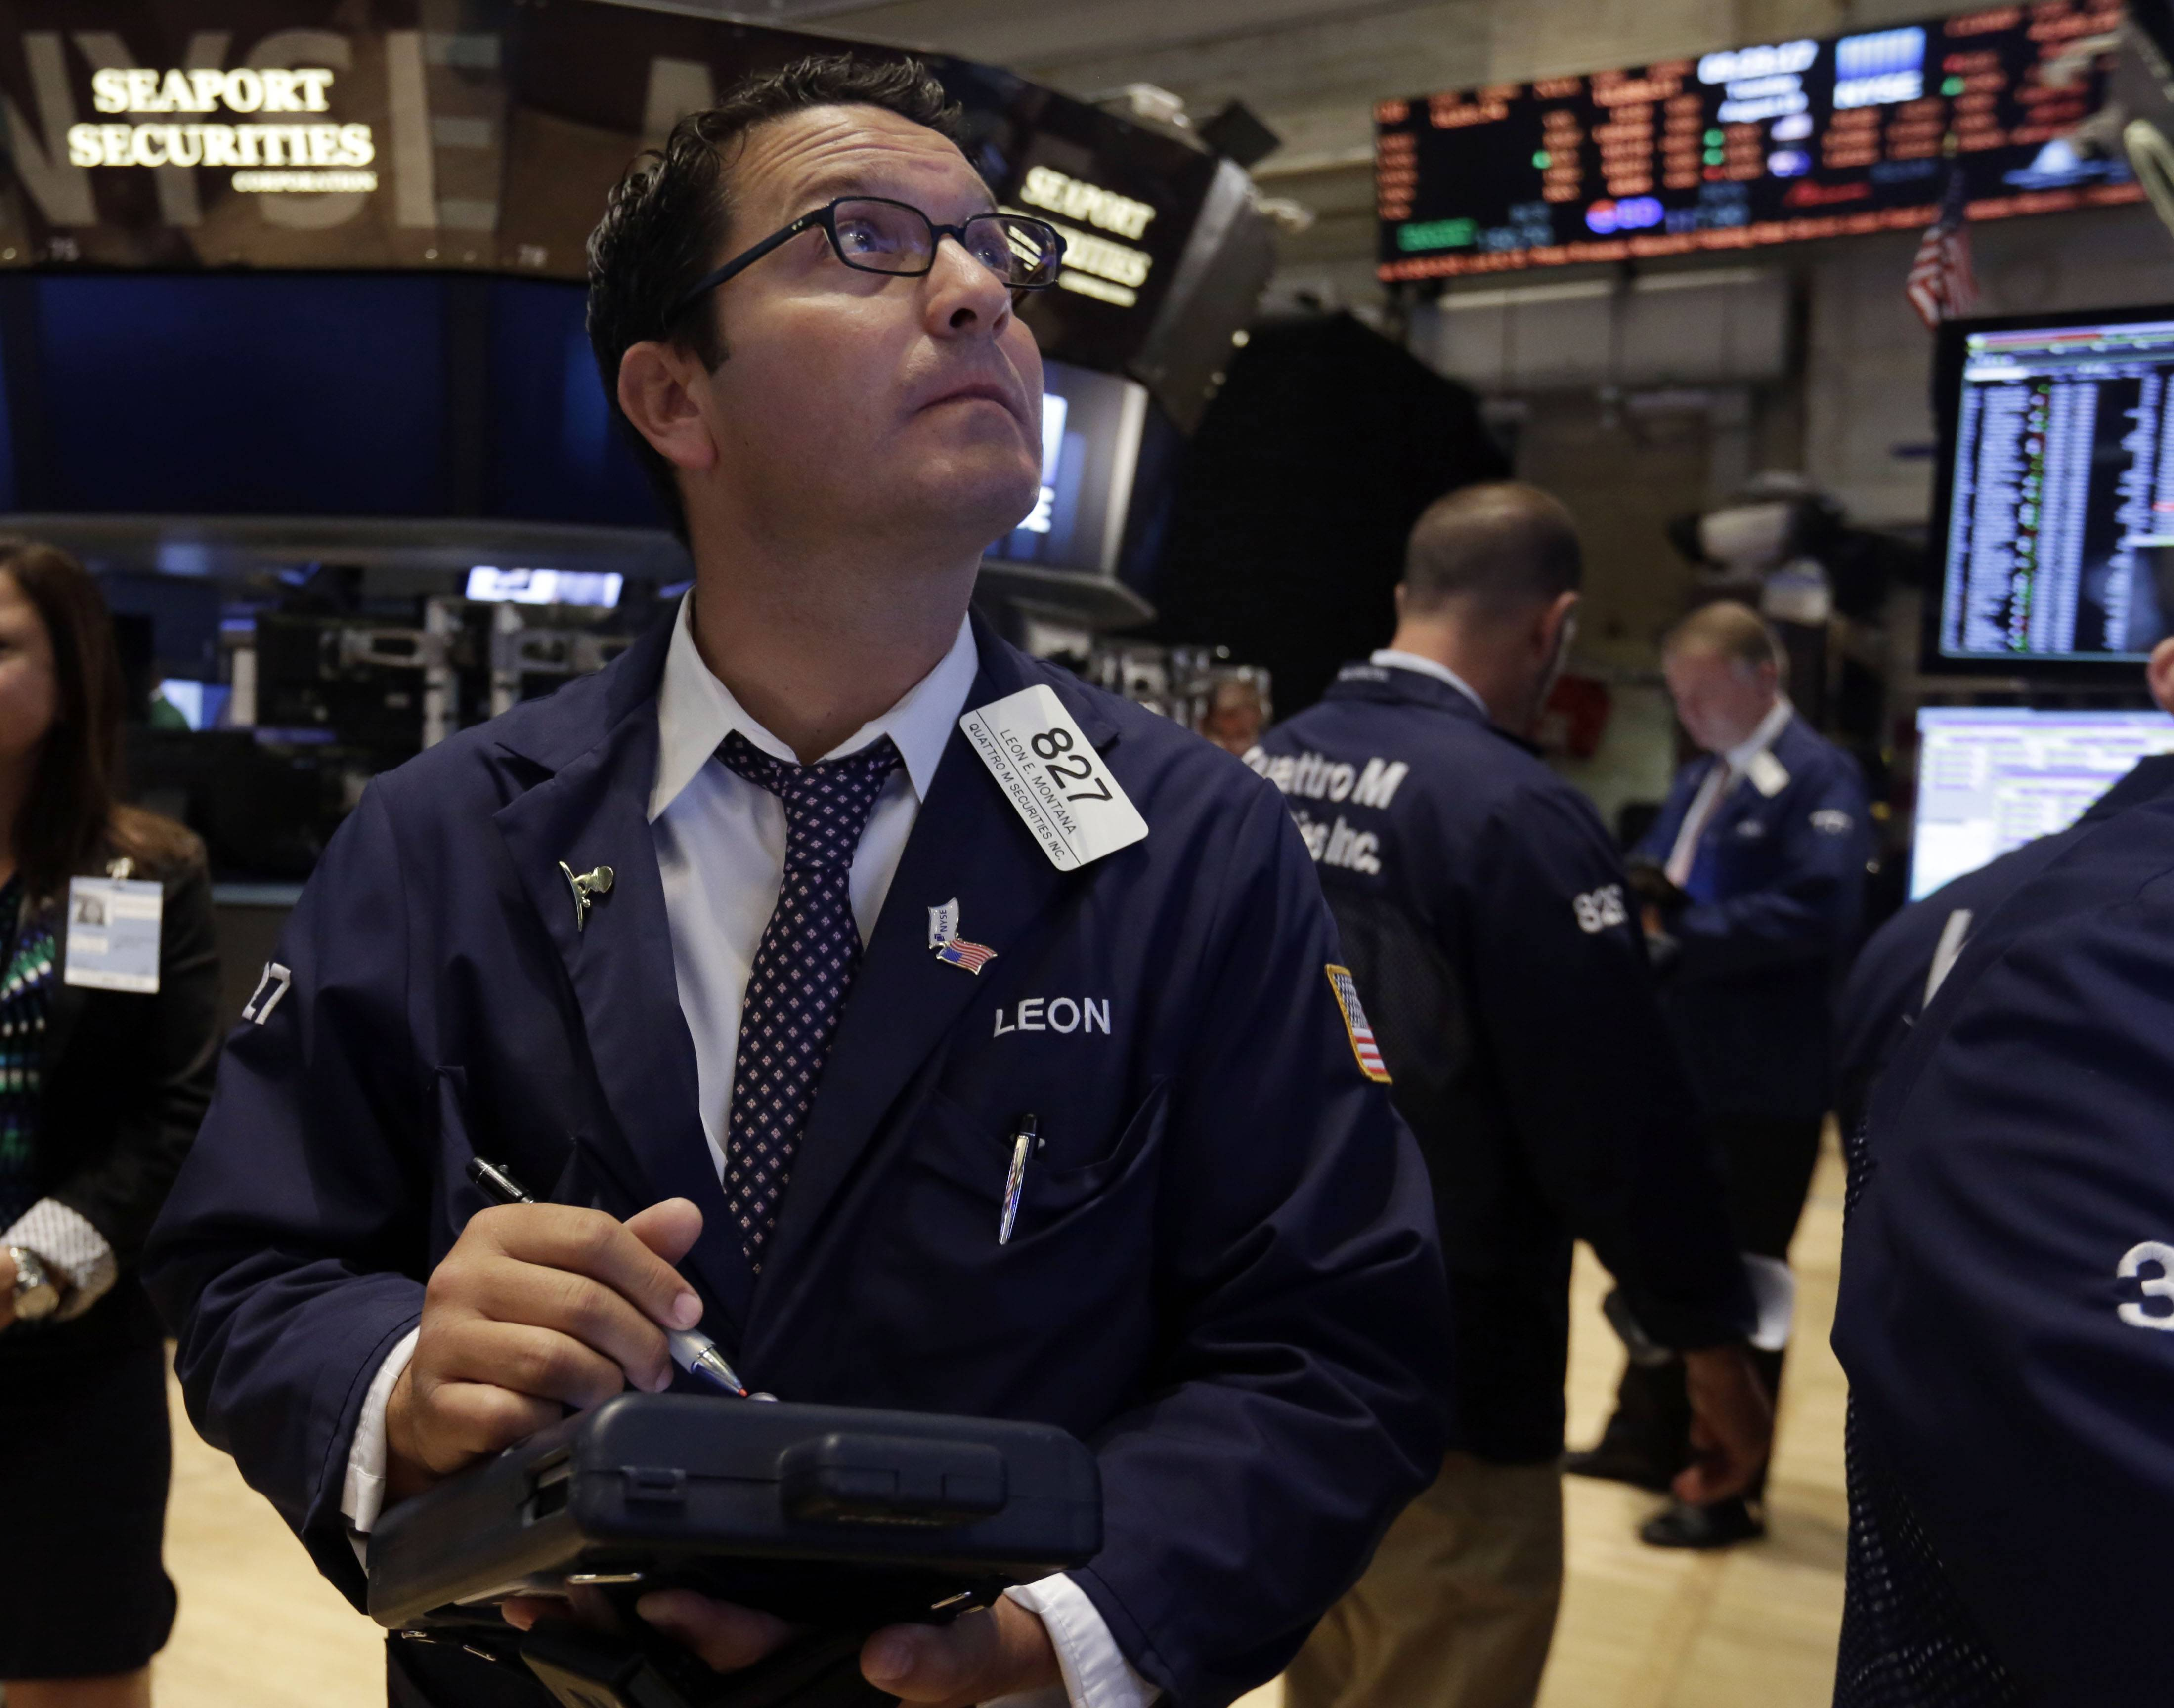 The Standard & Poor's 500 index closed above 2,000 points for the first time Tuesday. Financial markets moved higher after some encouraging news, including a surge in consumer confidence. The Dow Jones industrial average is about 32 points below the record close it set on July 16, while the Nasdaq remains well below its dot-com era high of 5,048.62 set in March 2000.